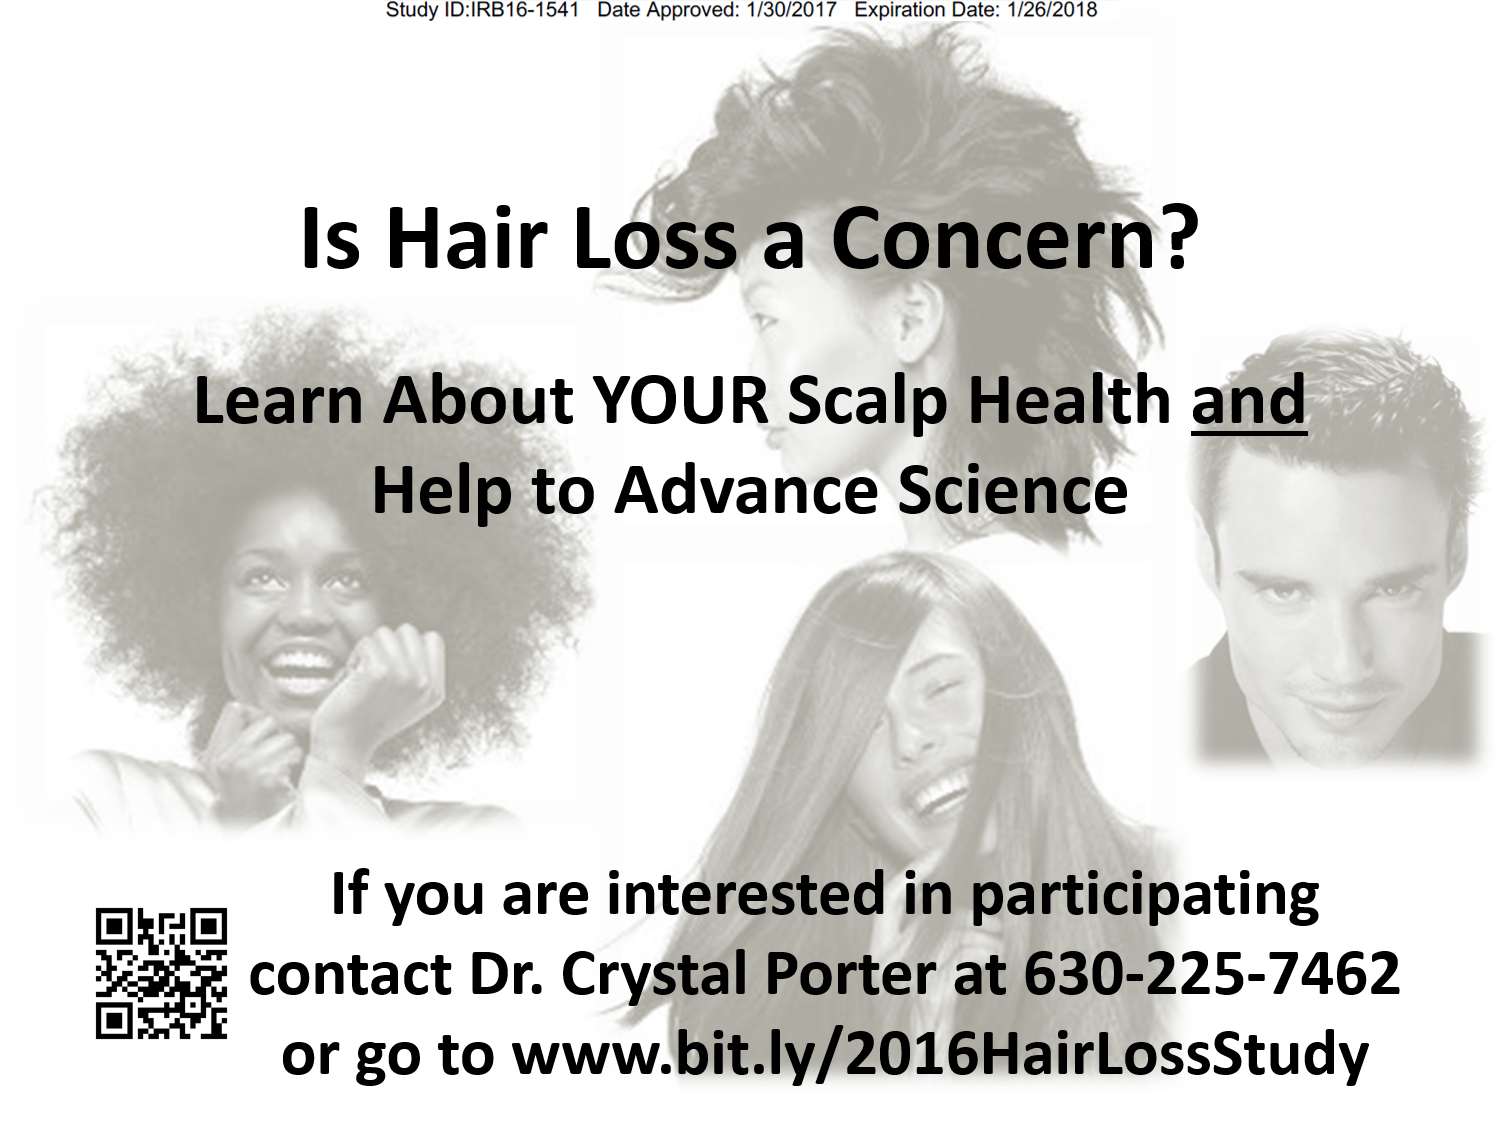 Alopecia, Hair Thinning, Hair Loss Study